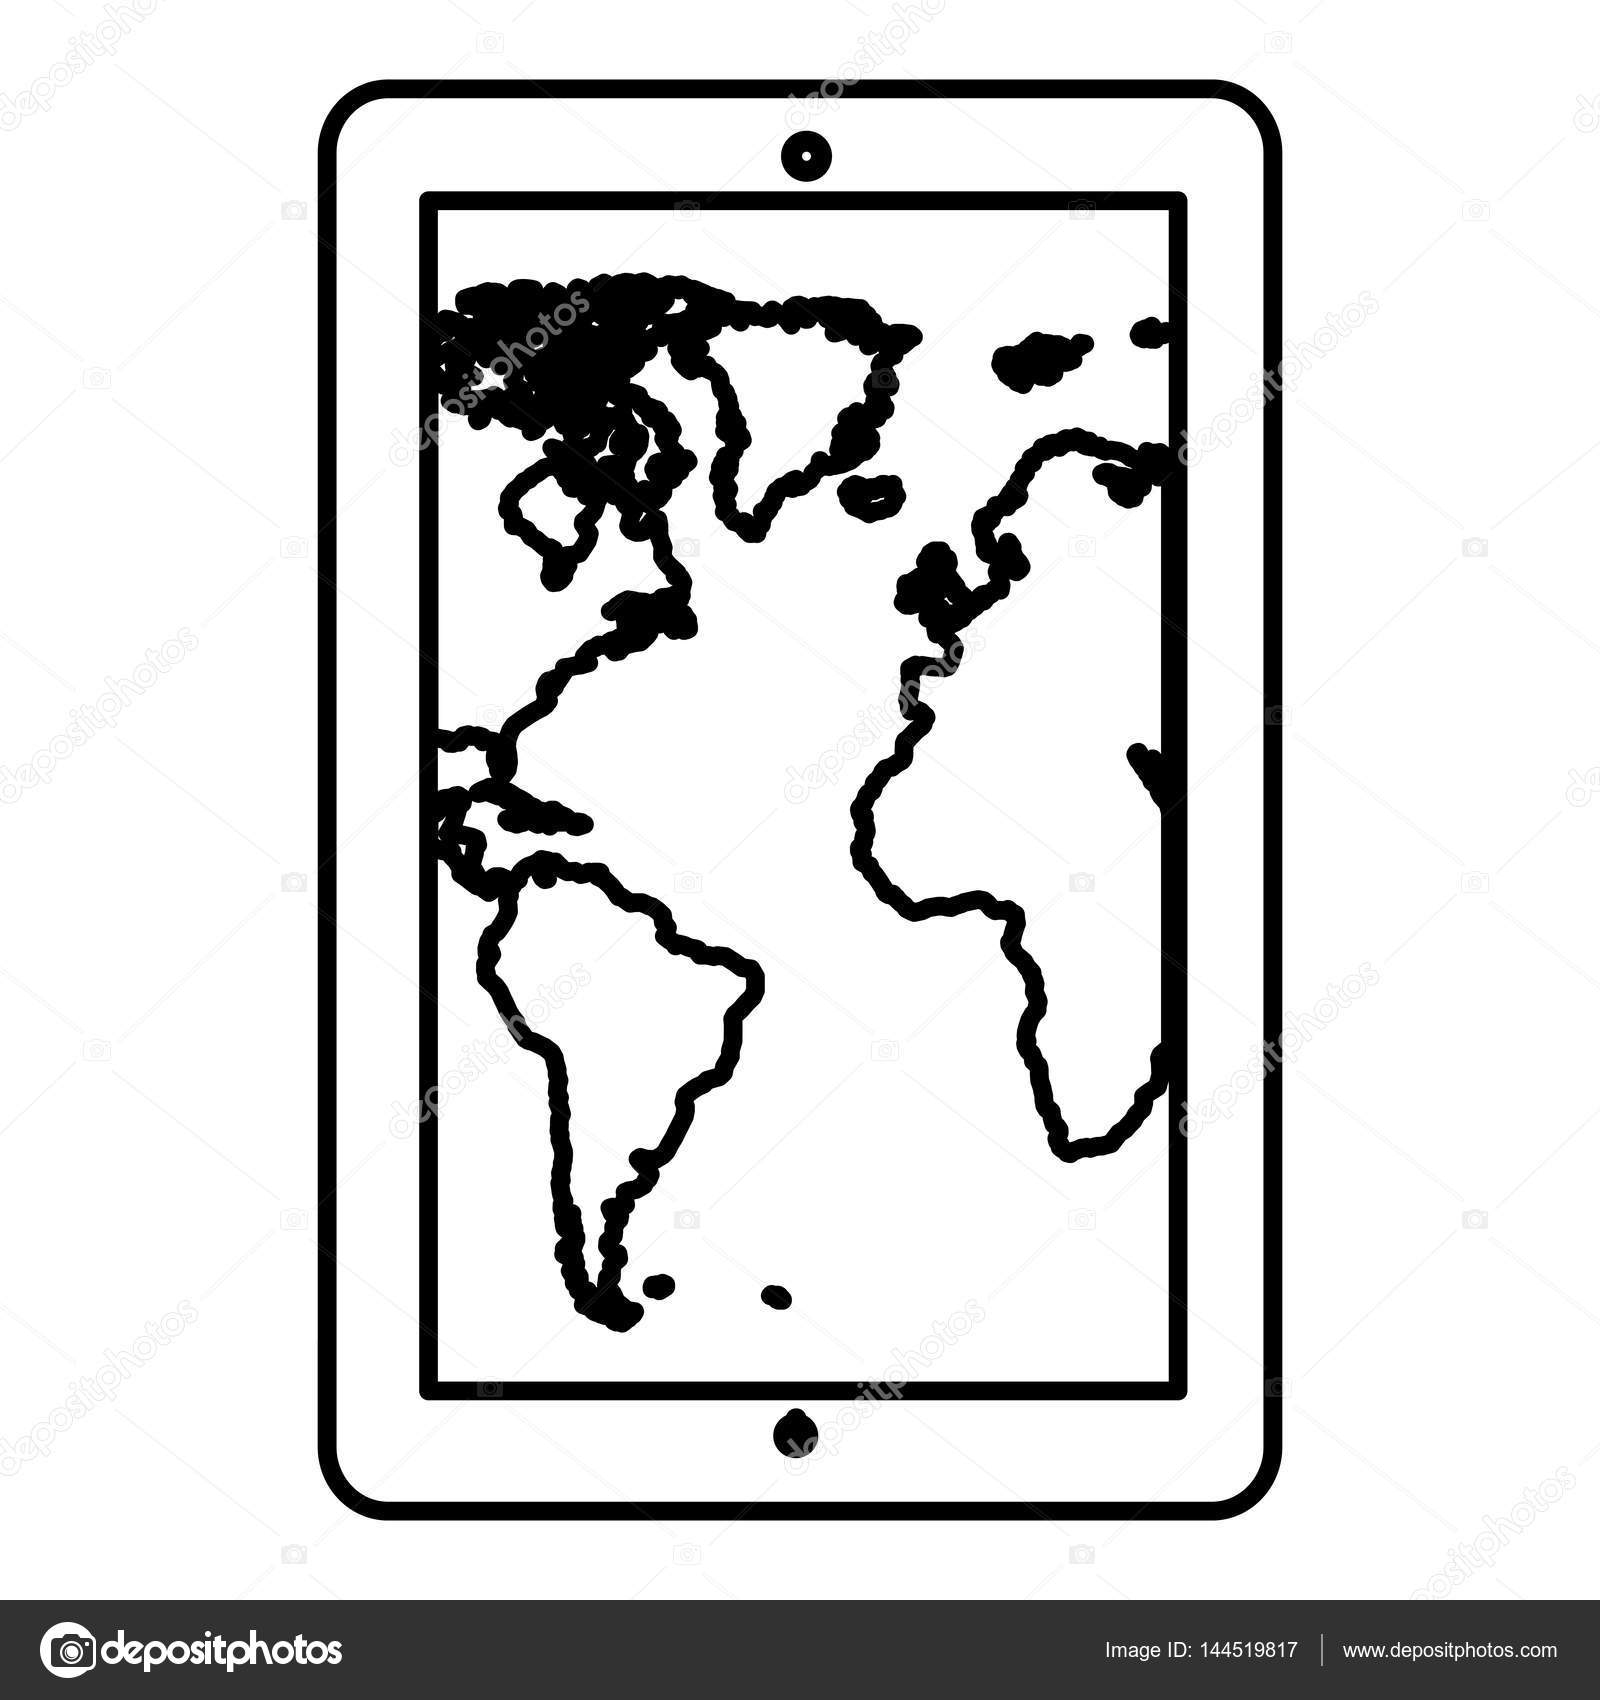 Monochrome contour tablet in vertical position and world map monochrome contour tablet in vertical position and world map wallpaper vector illustration vector by grgroupstock gumiabroncs Gallery